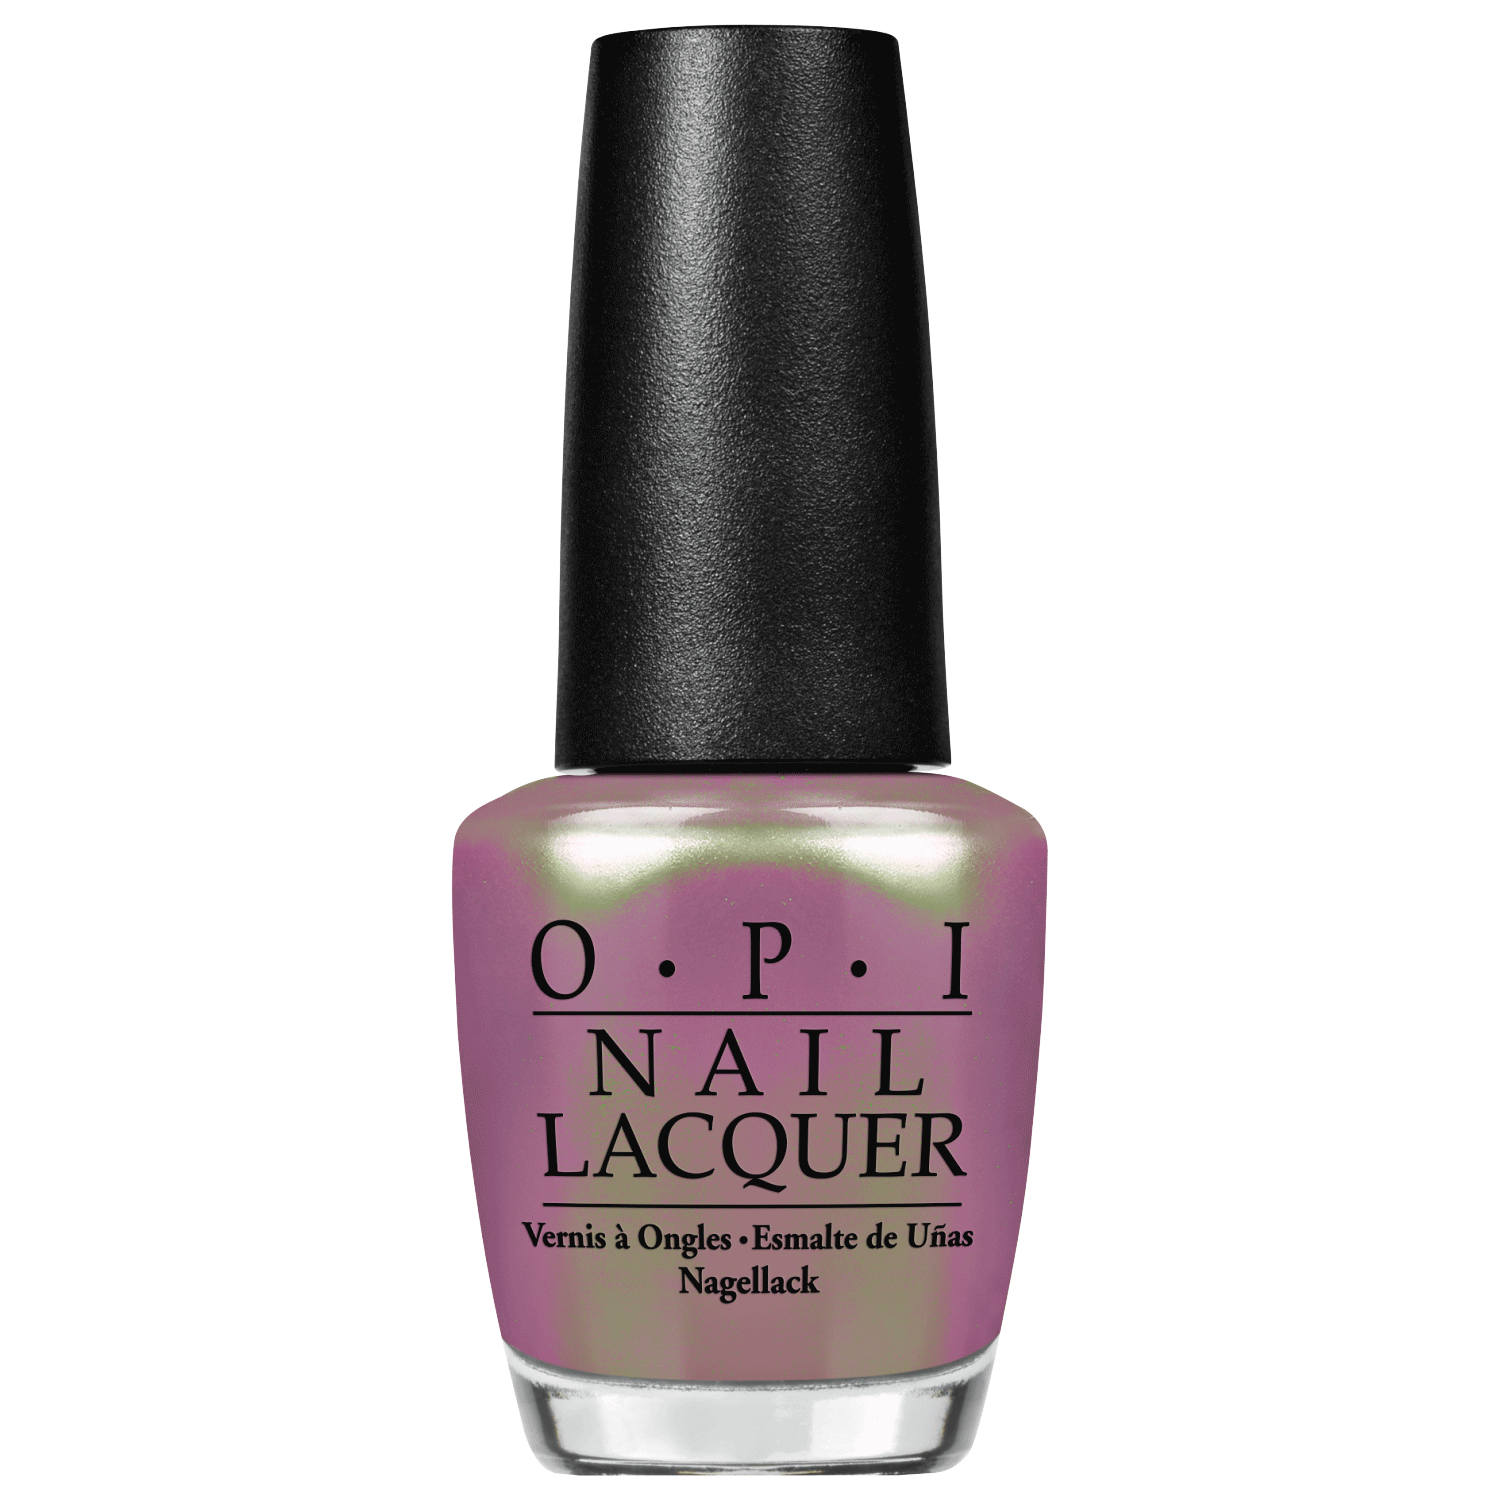 Sephora OPI Nail Lacquer Significant Other Color